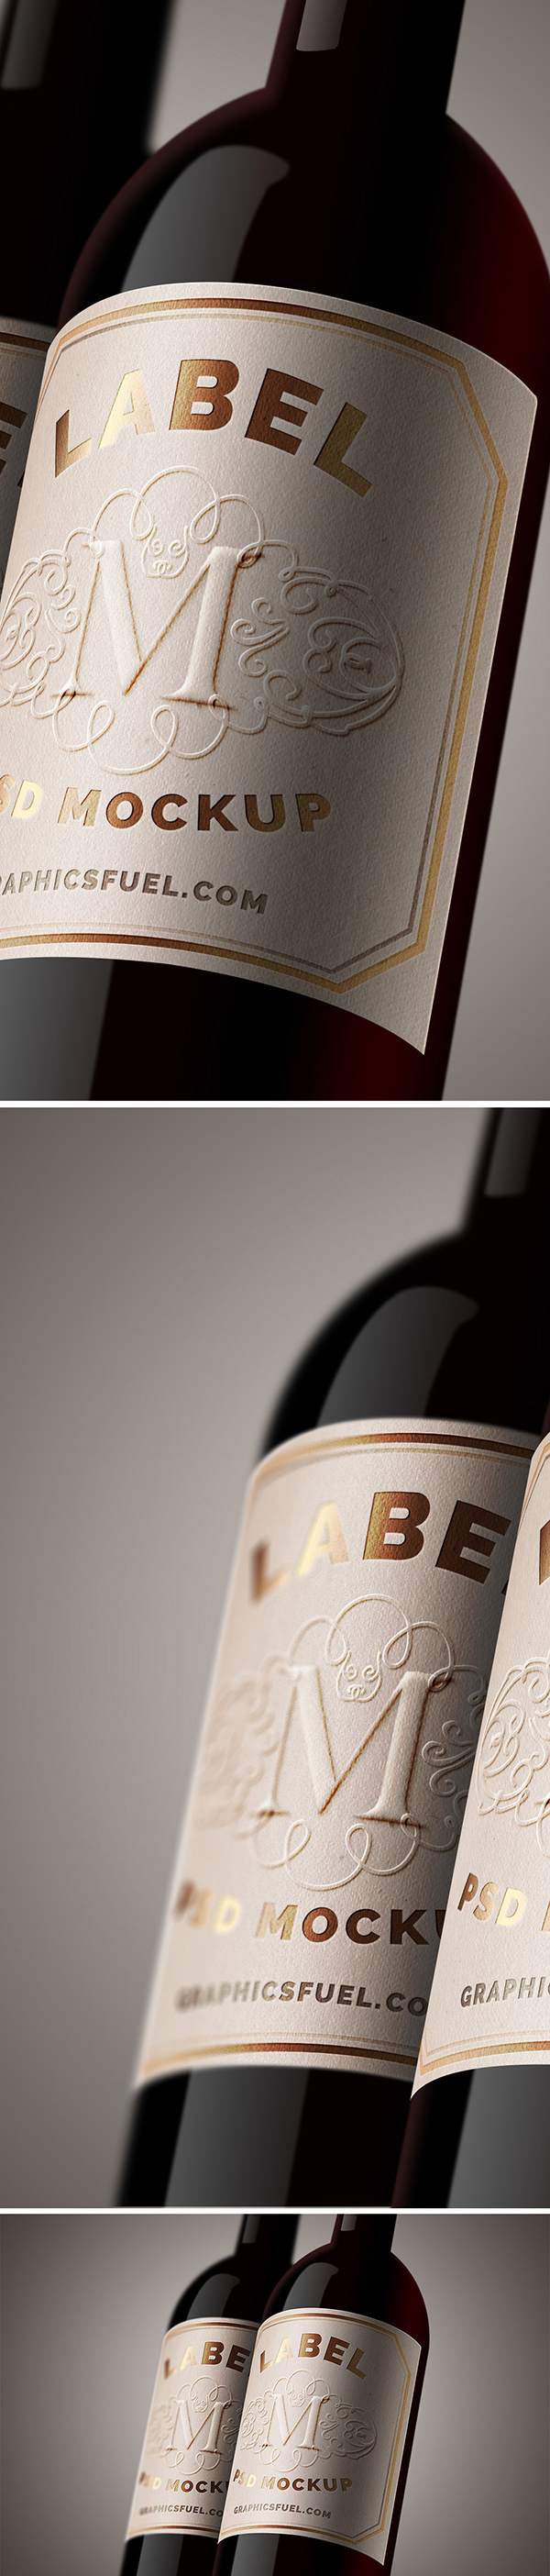 06 Free Wine Bottle Label Mockup